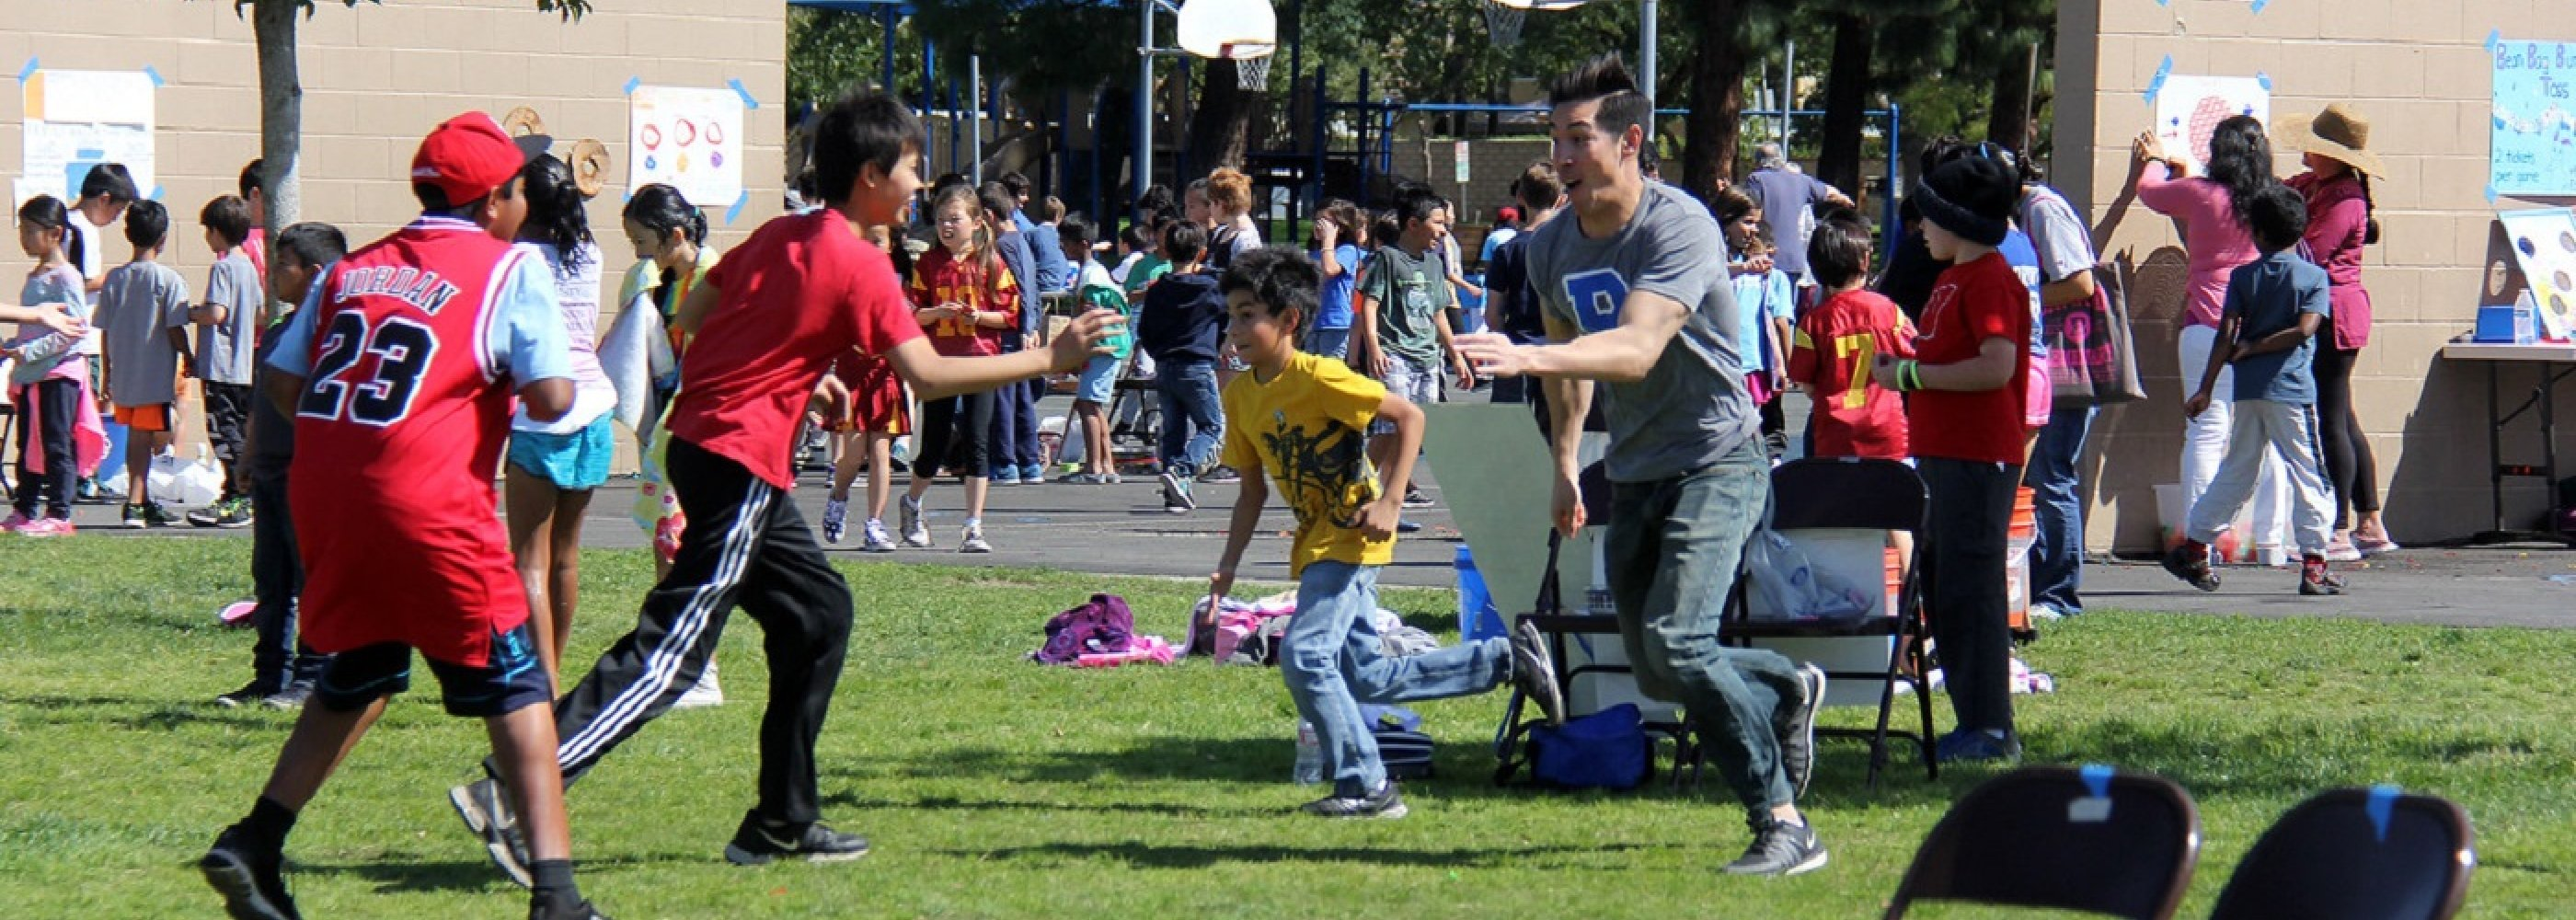 Teacher and Students Playing in Field